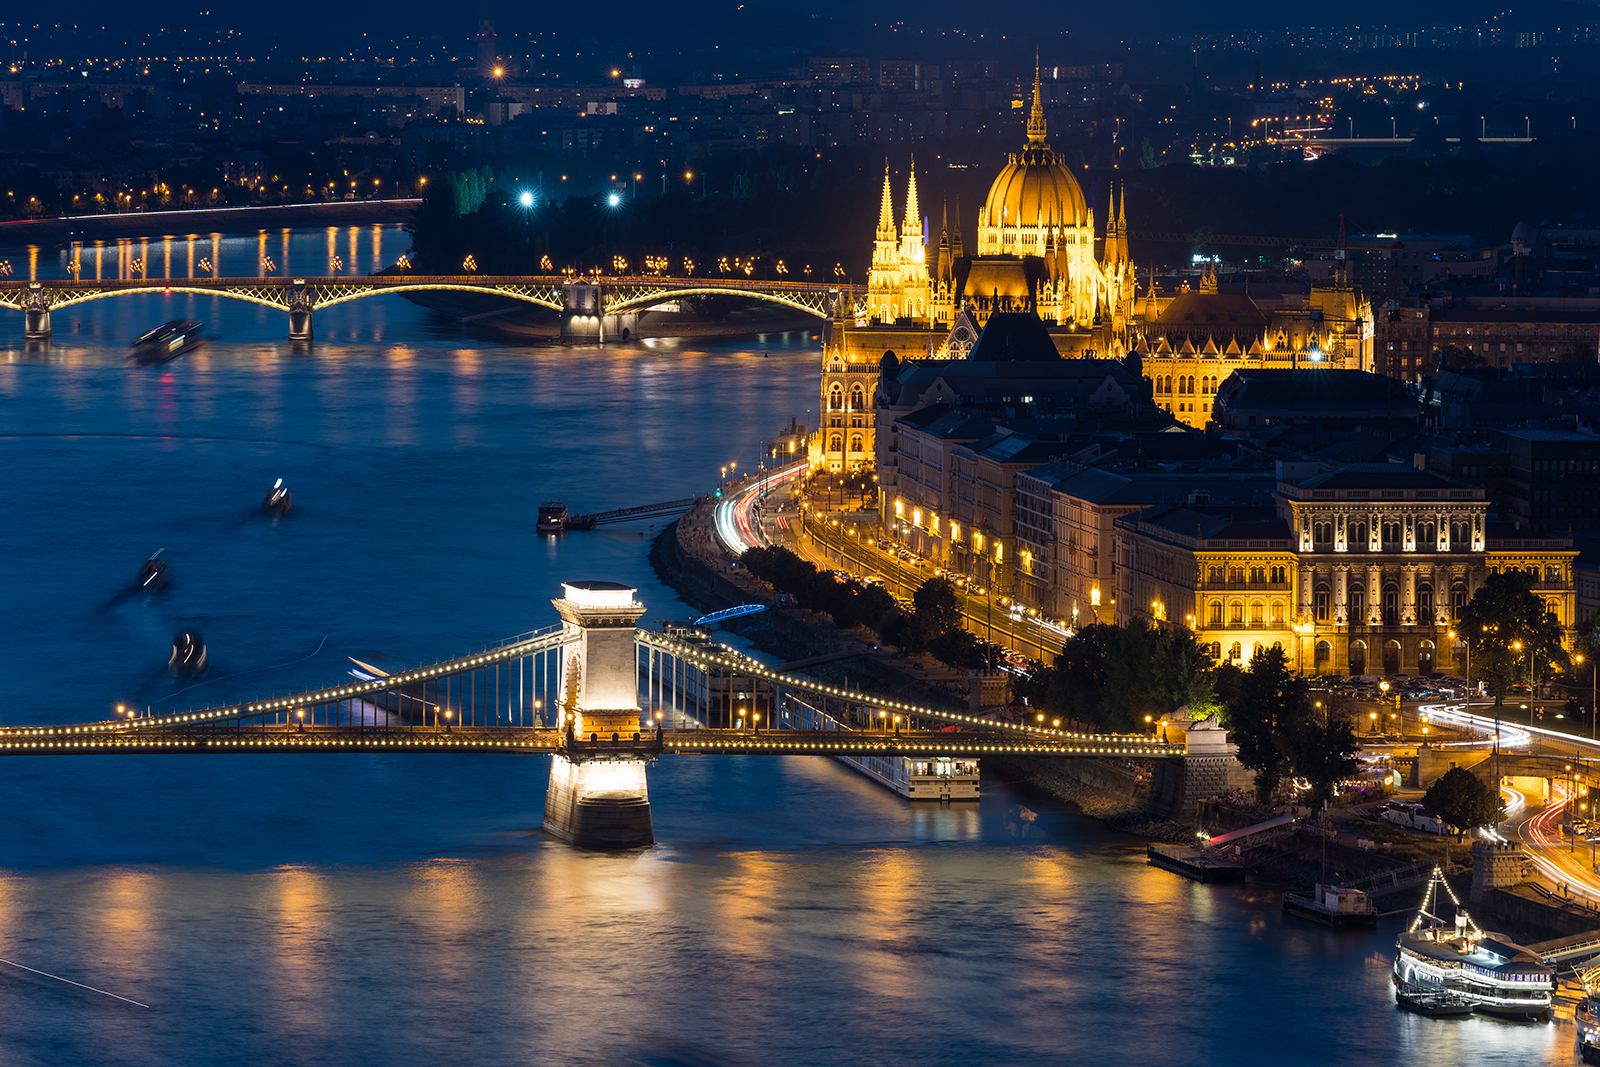 Budapest, Parliament, chain bridge, citadel, Hungary, night photo, longexposure, Budapest with the Sony A7III